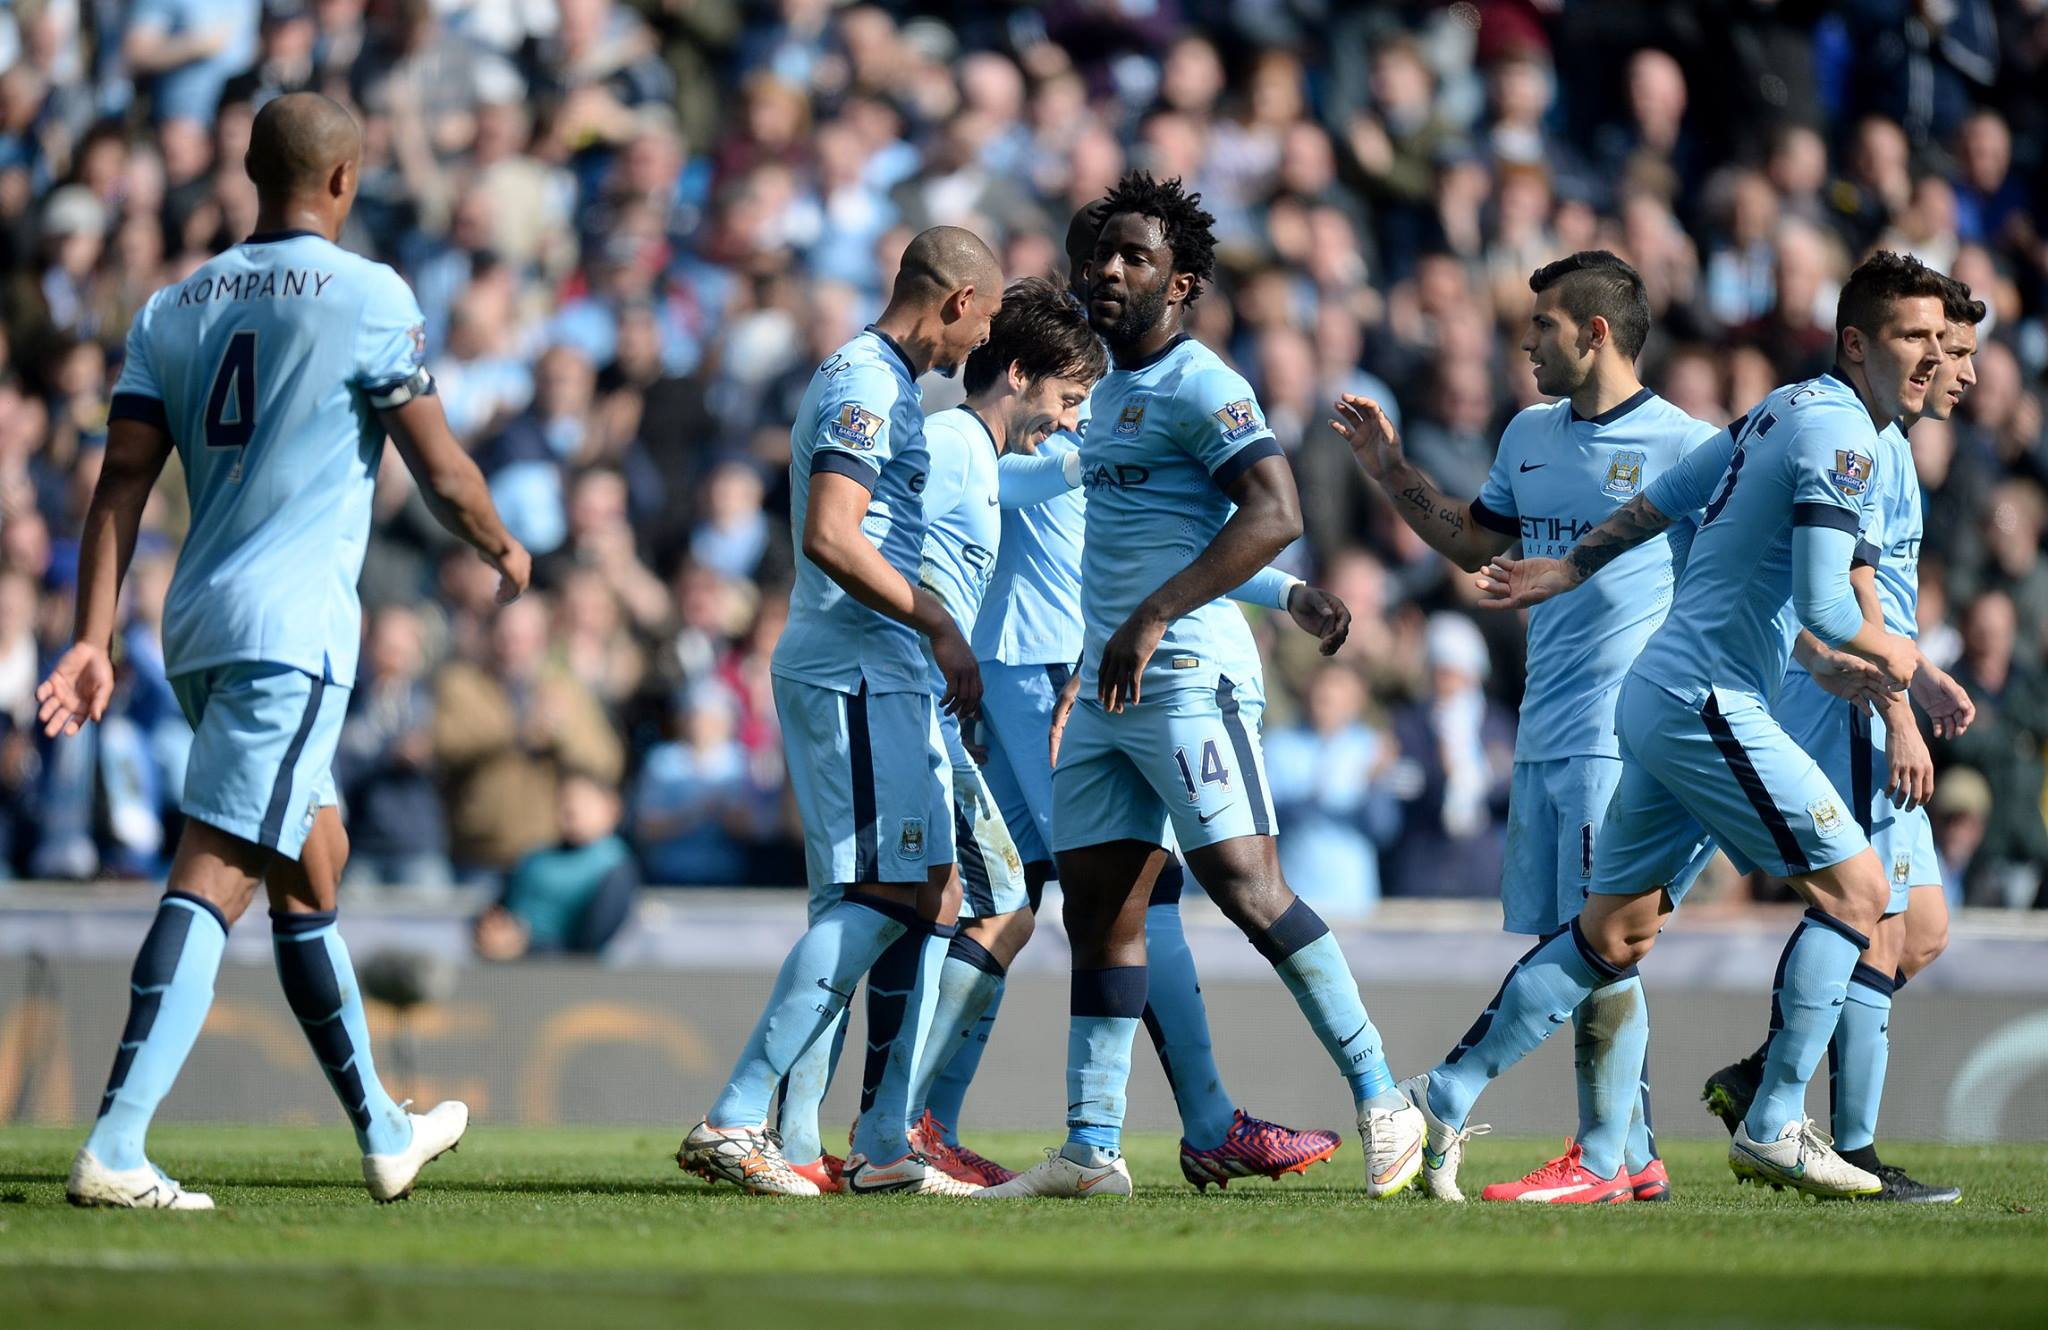 Silva service - Merlin celebrated goal number 11 in the Premier League this season. Courtesy@MCFC